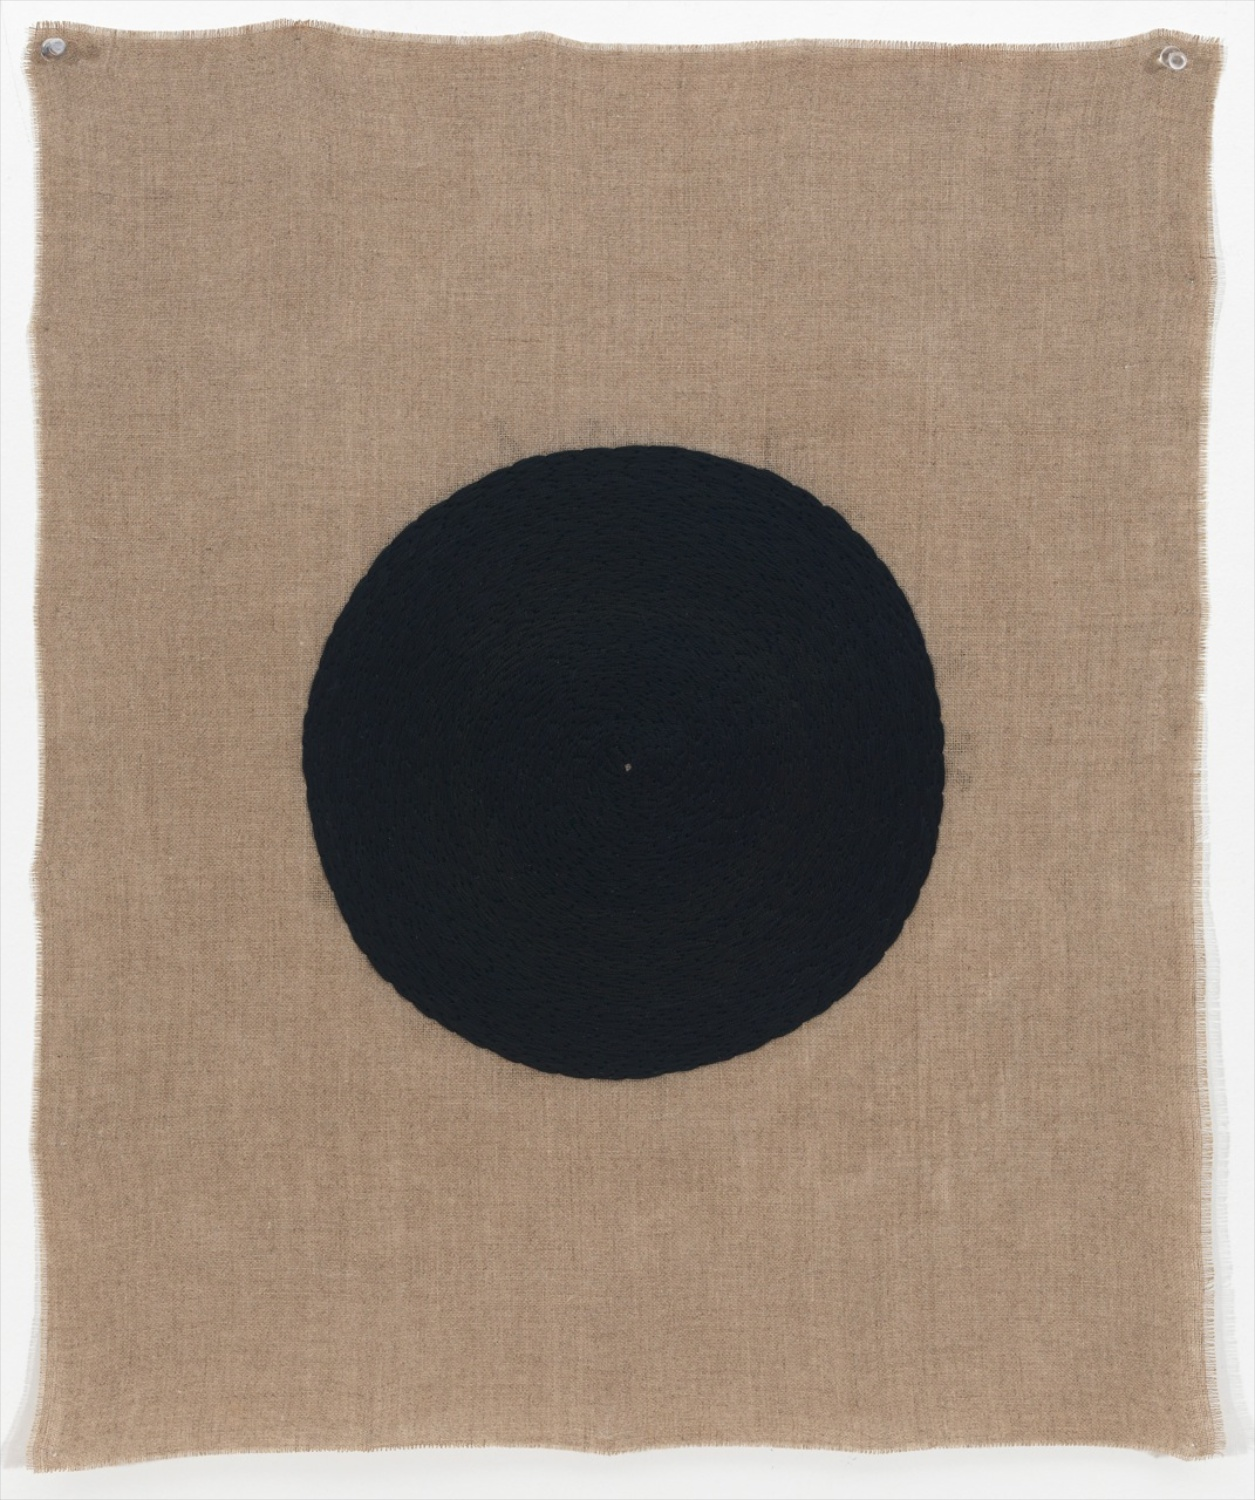 Michelle Grabner  Untitled  2012 Embroidery thread on linen 25h x 20w in MGrab294